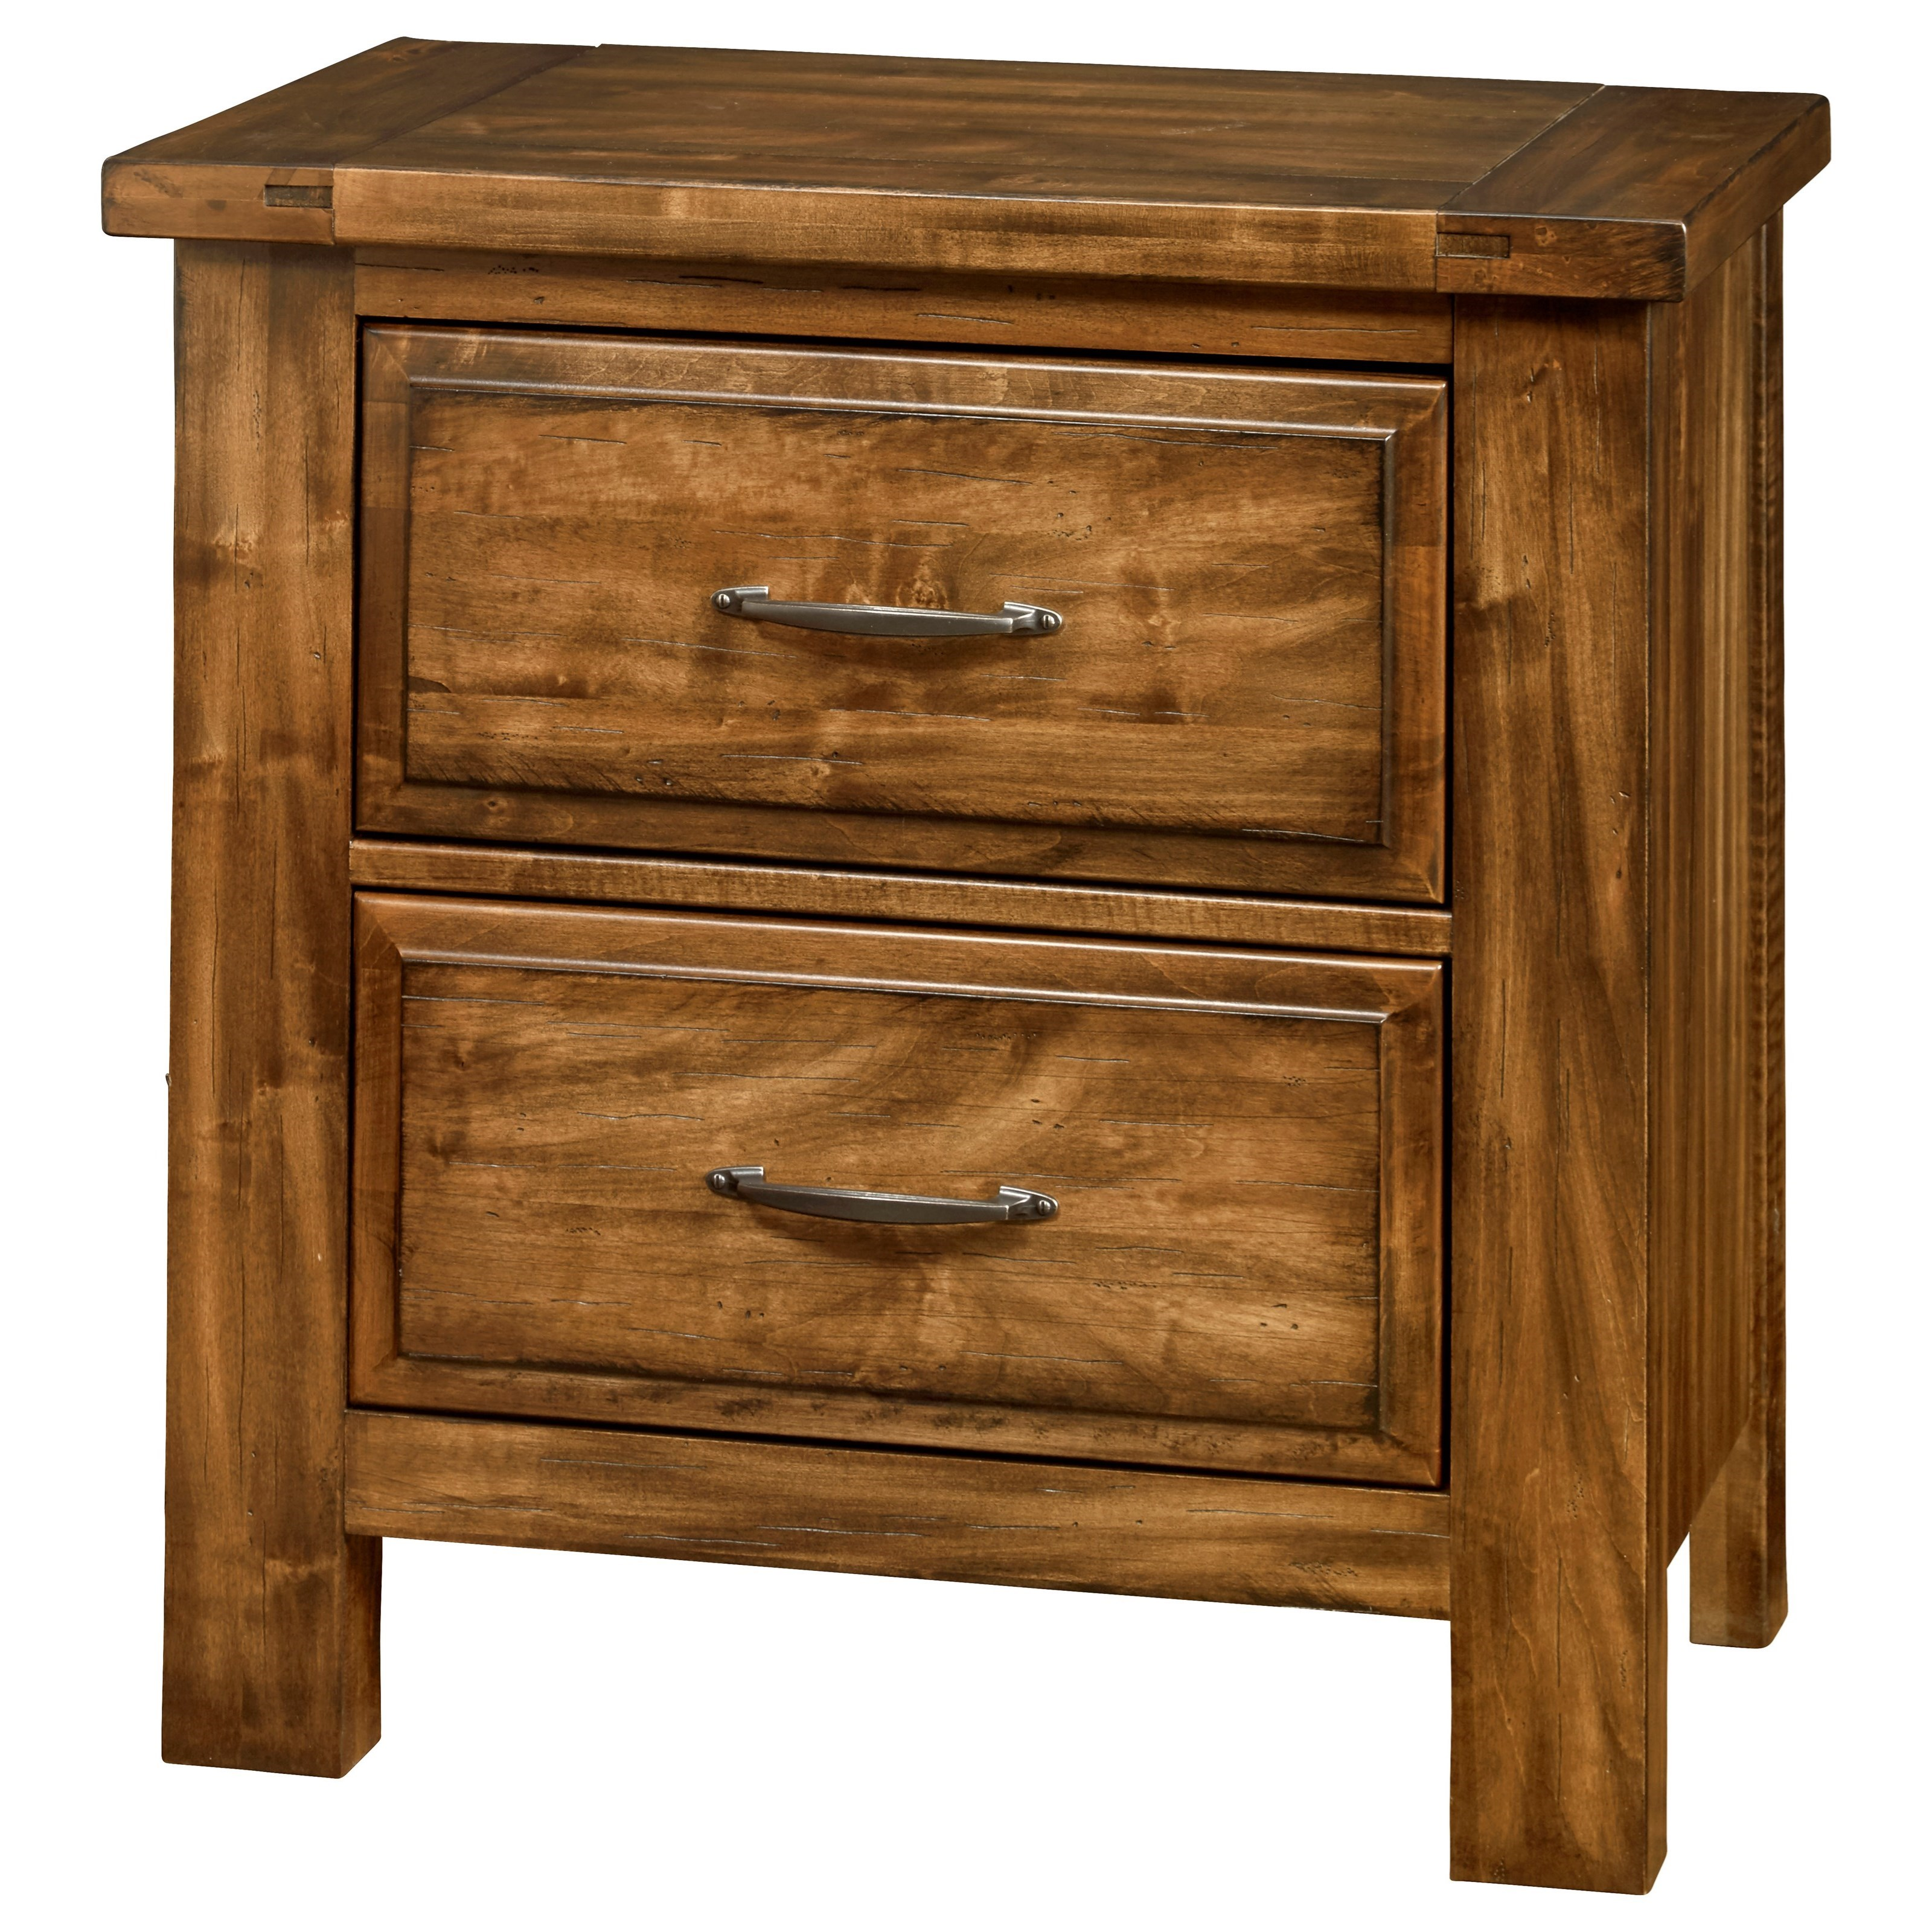 Maple Road Night Stand - 2 Drawers by Artisan & Post at Prime Brothers Furniture